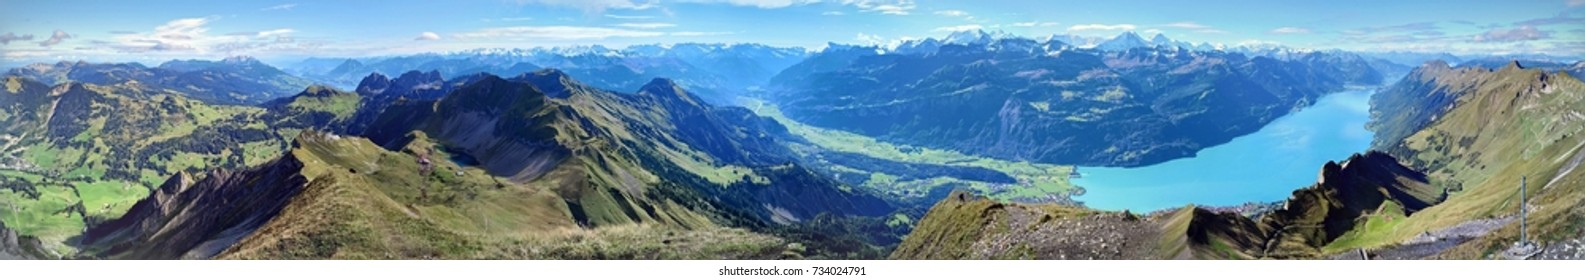 Panoramic view of Brienz, Lake Brienz, and the stunning view of mountain range in a beautiful day, Jungfrau region, Switzerland